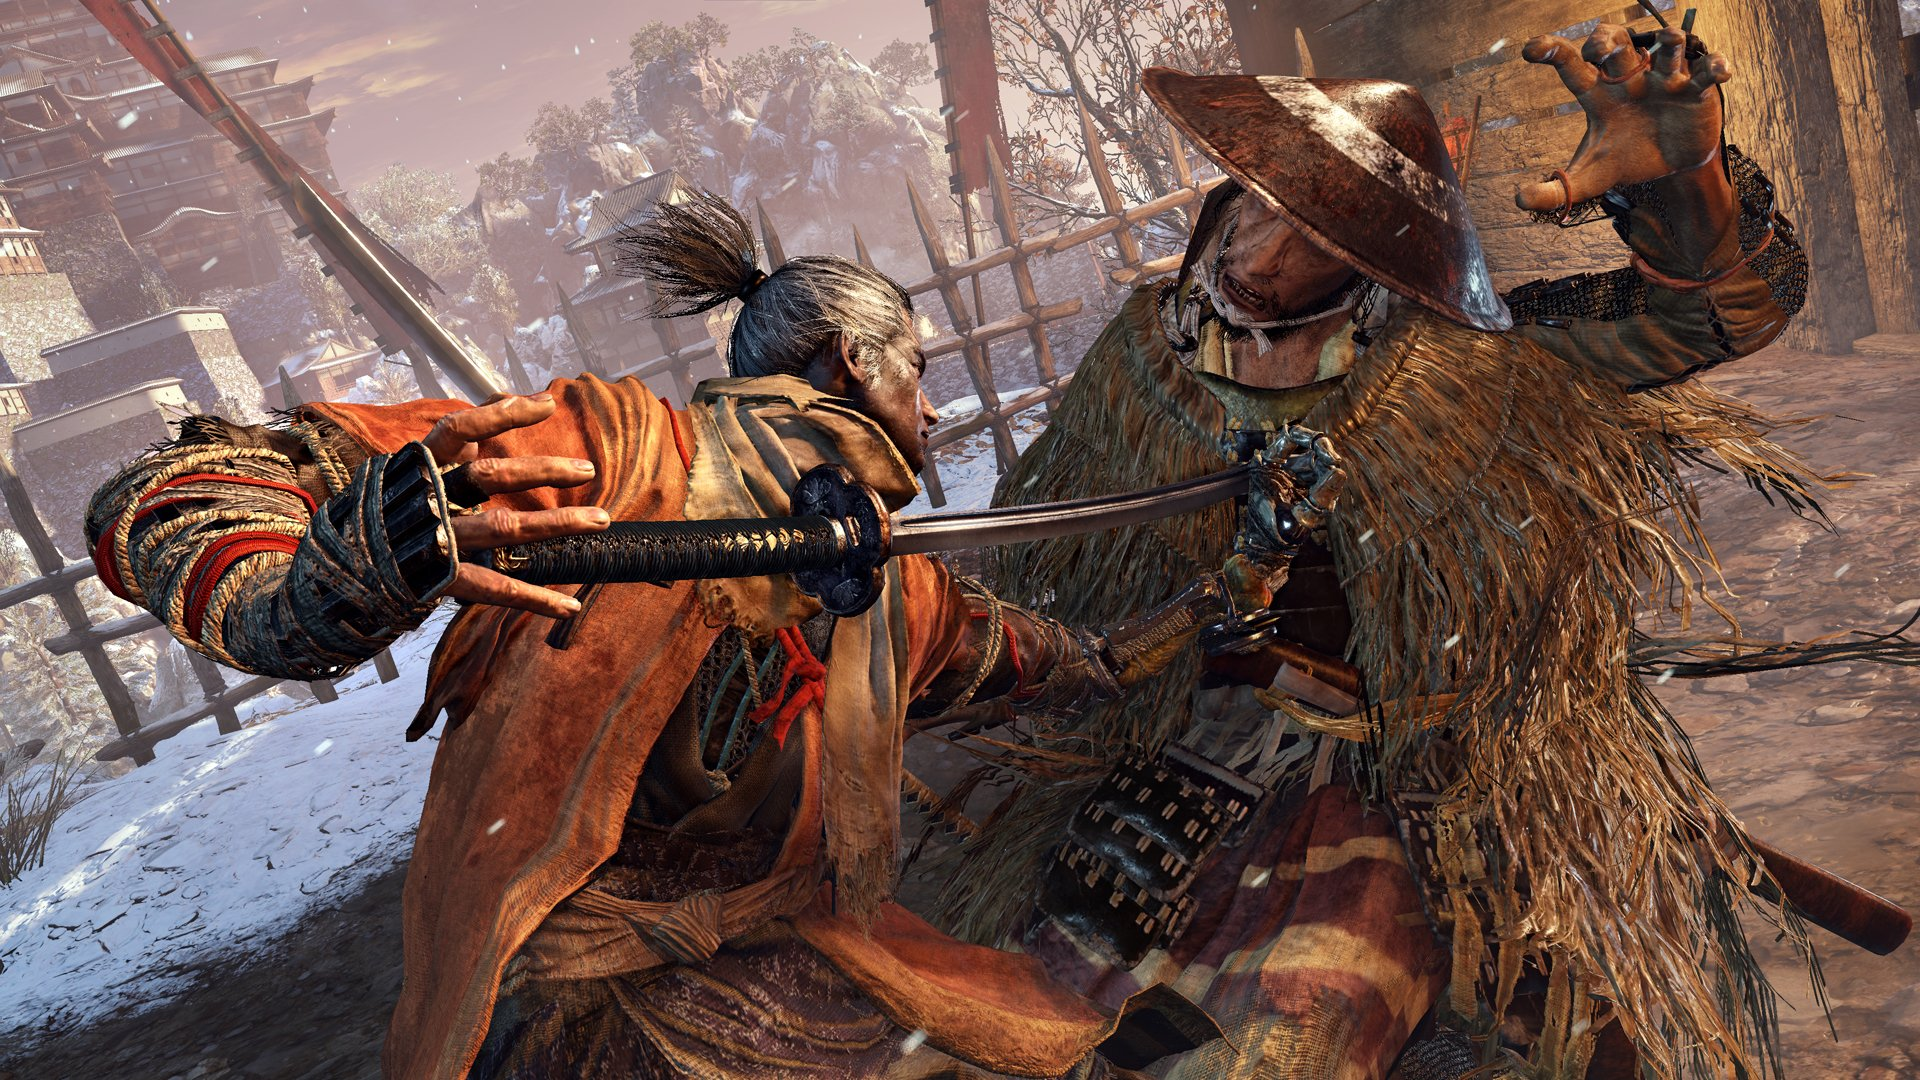 ¡10 minutos de Sekiro: Shadows Die Twice!